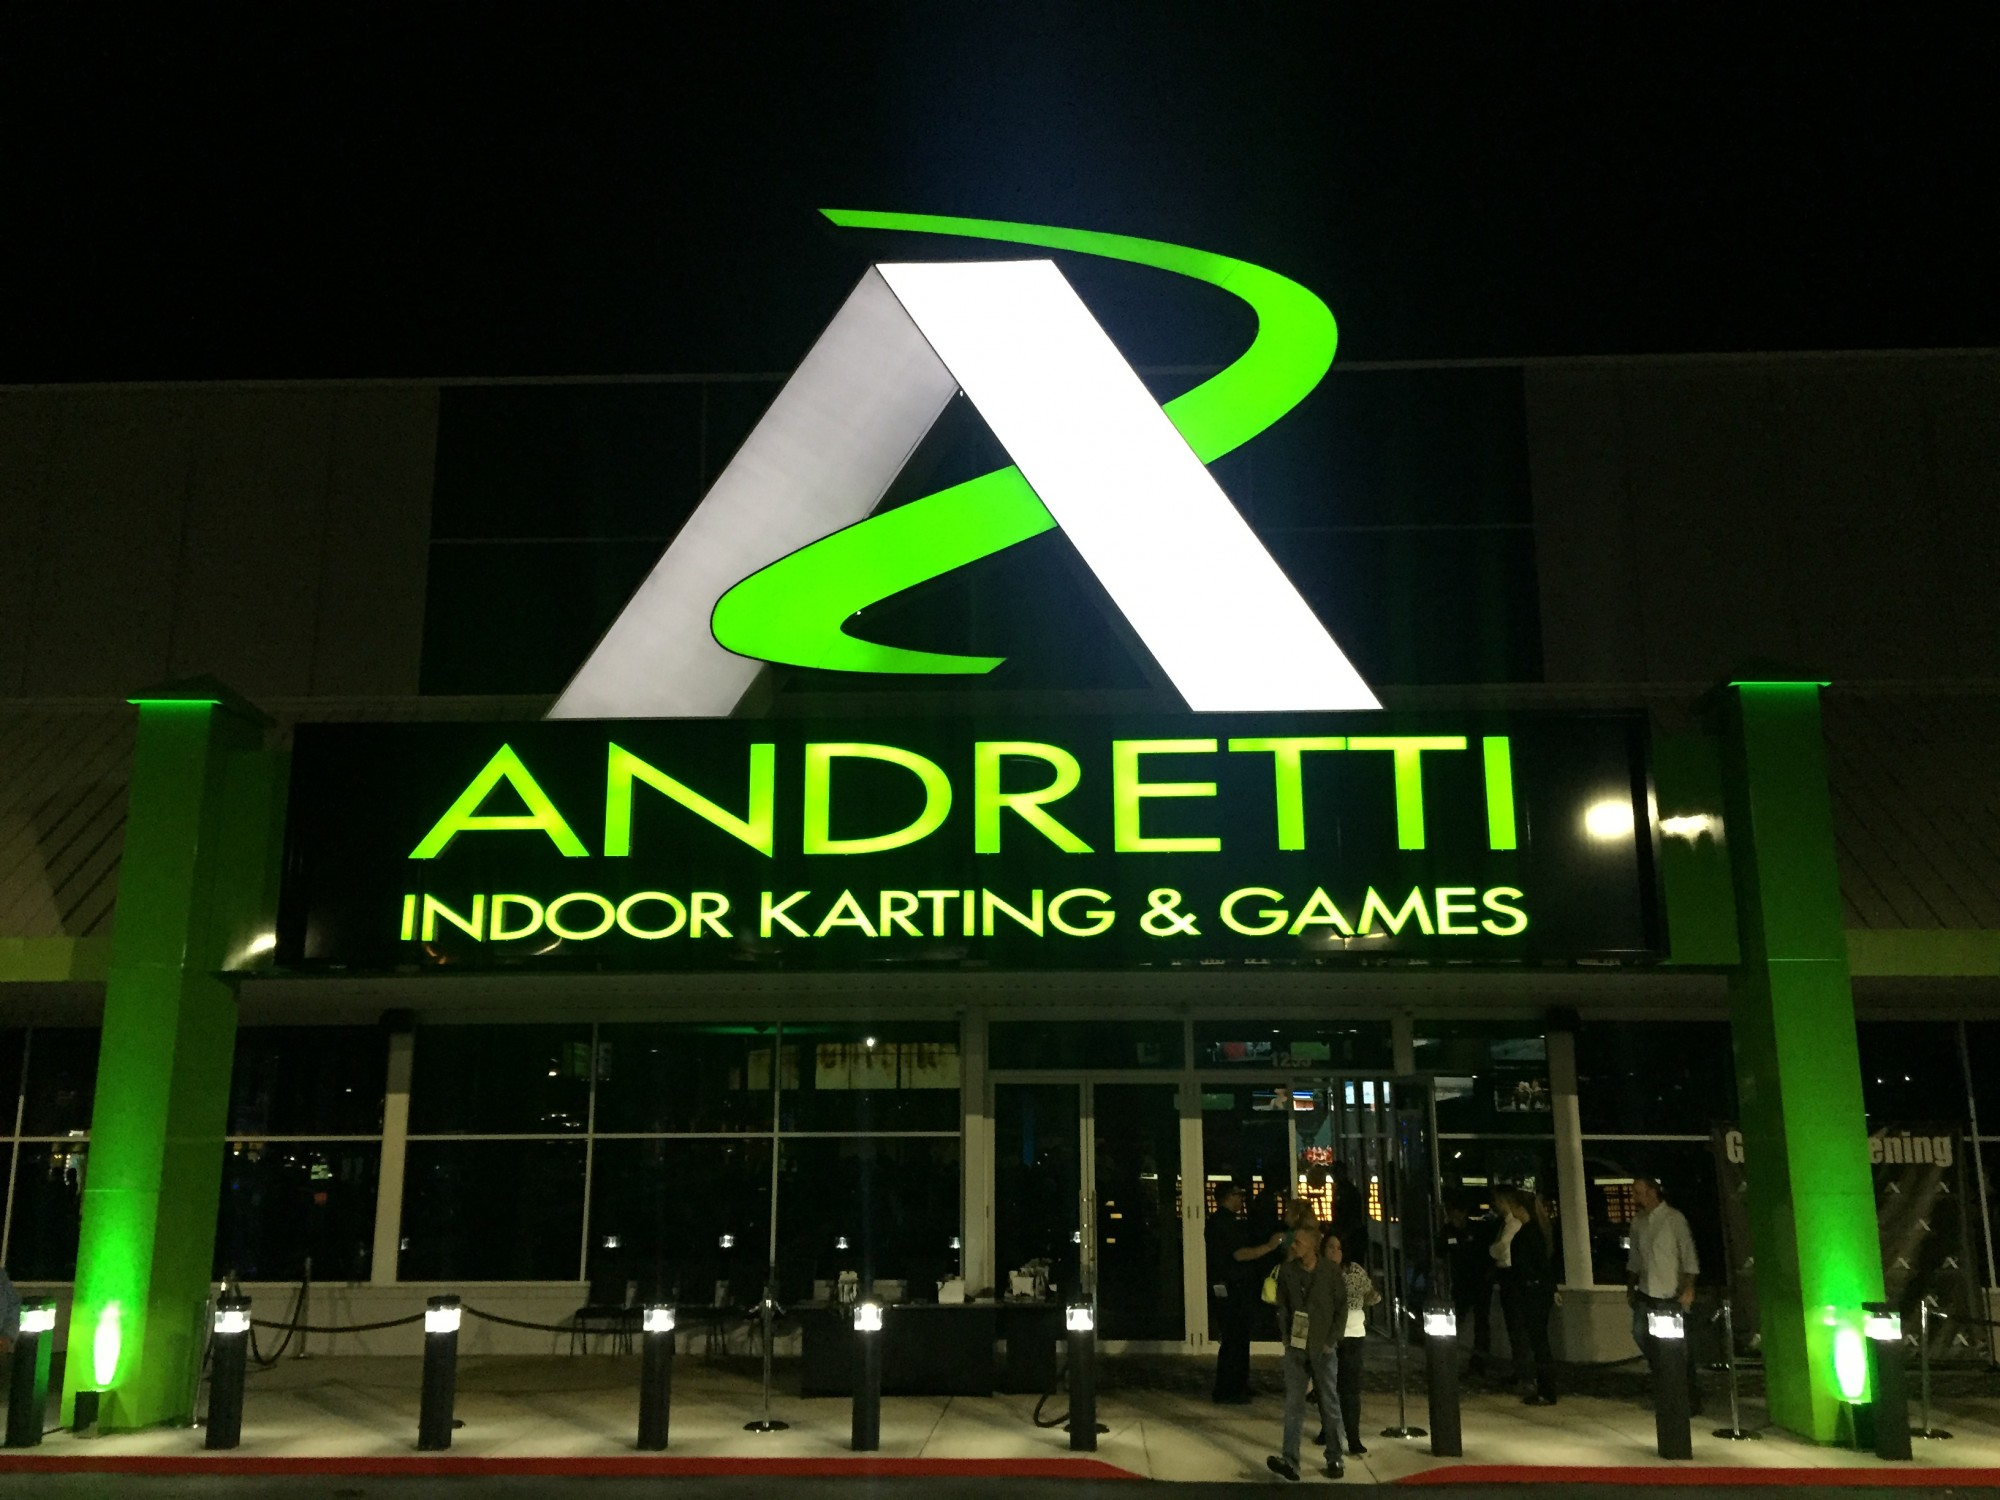 Andretti indoor karting games marietta ga ccs image group